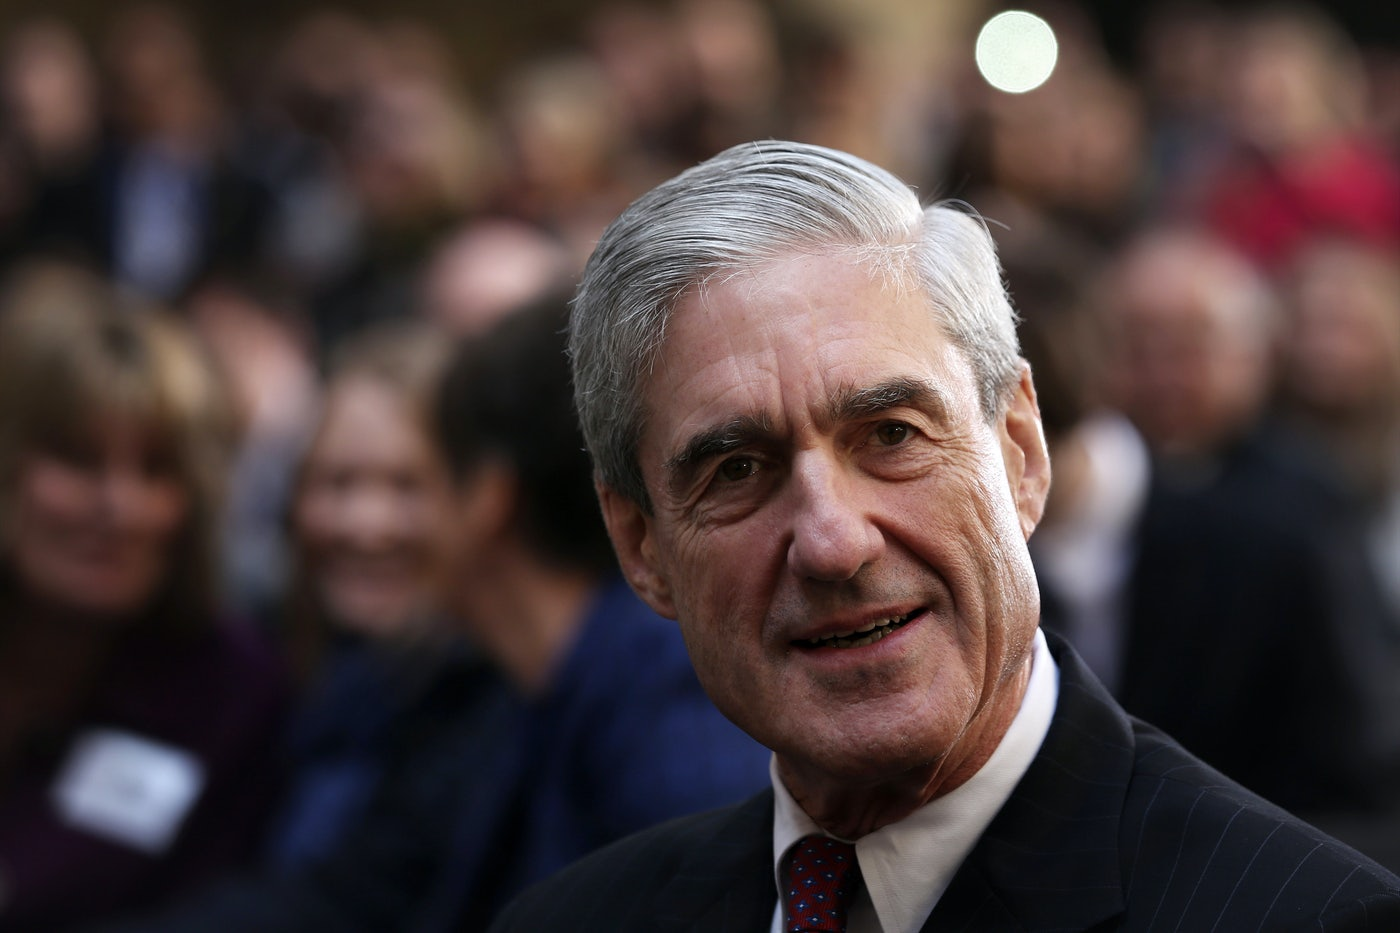 The 75-year old son of father (?) and mother(?) Robert Mueller in 2019 photo. Robert Mueller earned a  million dollar salary - leaving the net worth at  million in 2019